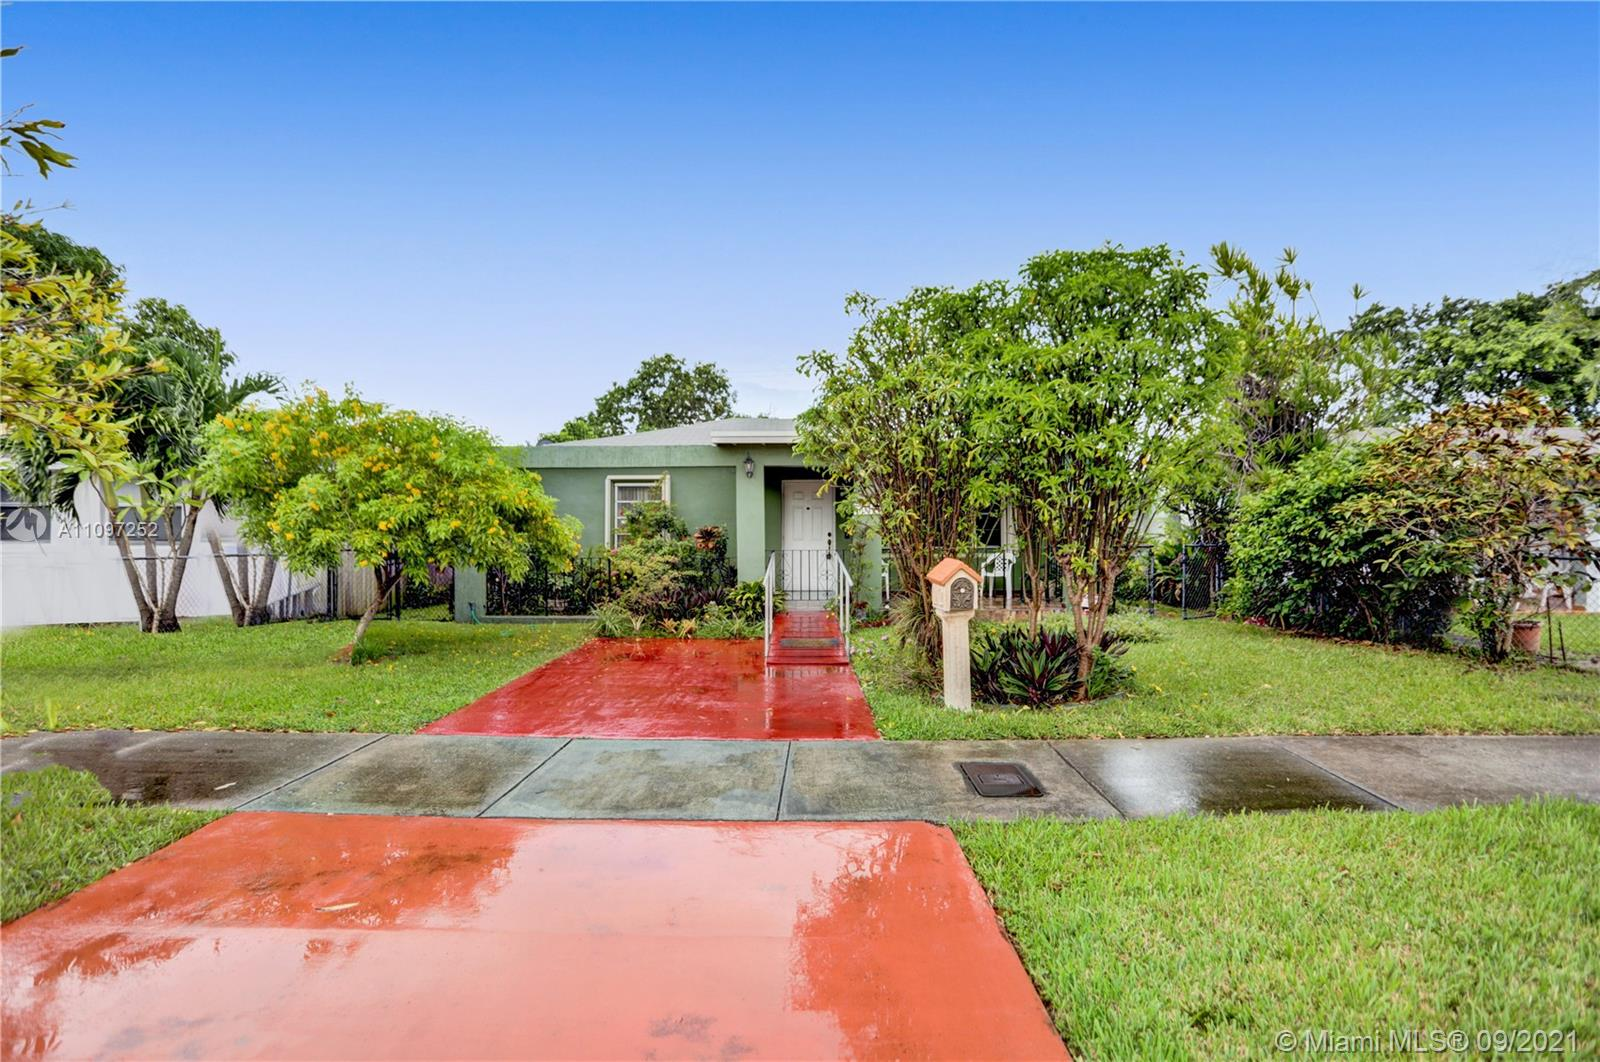 Single Family Home,For Sale,1810 NW 36th Ave, Miami, Florida 33125,Brickell,realty,broker,condos near me